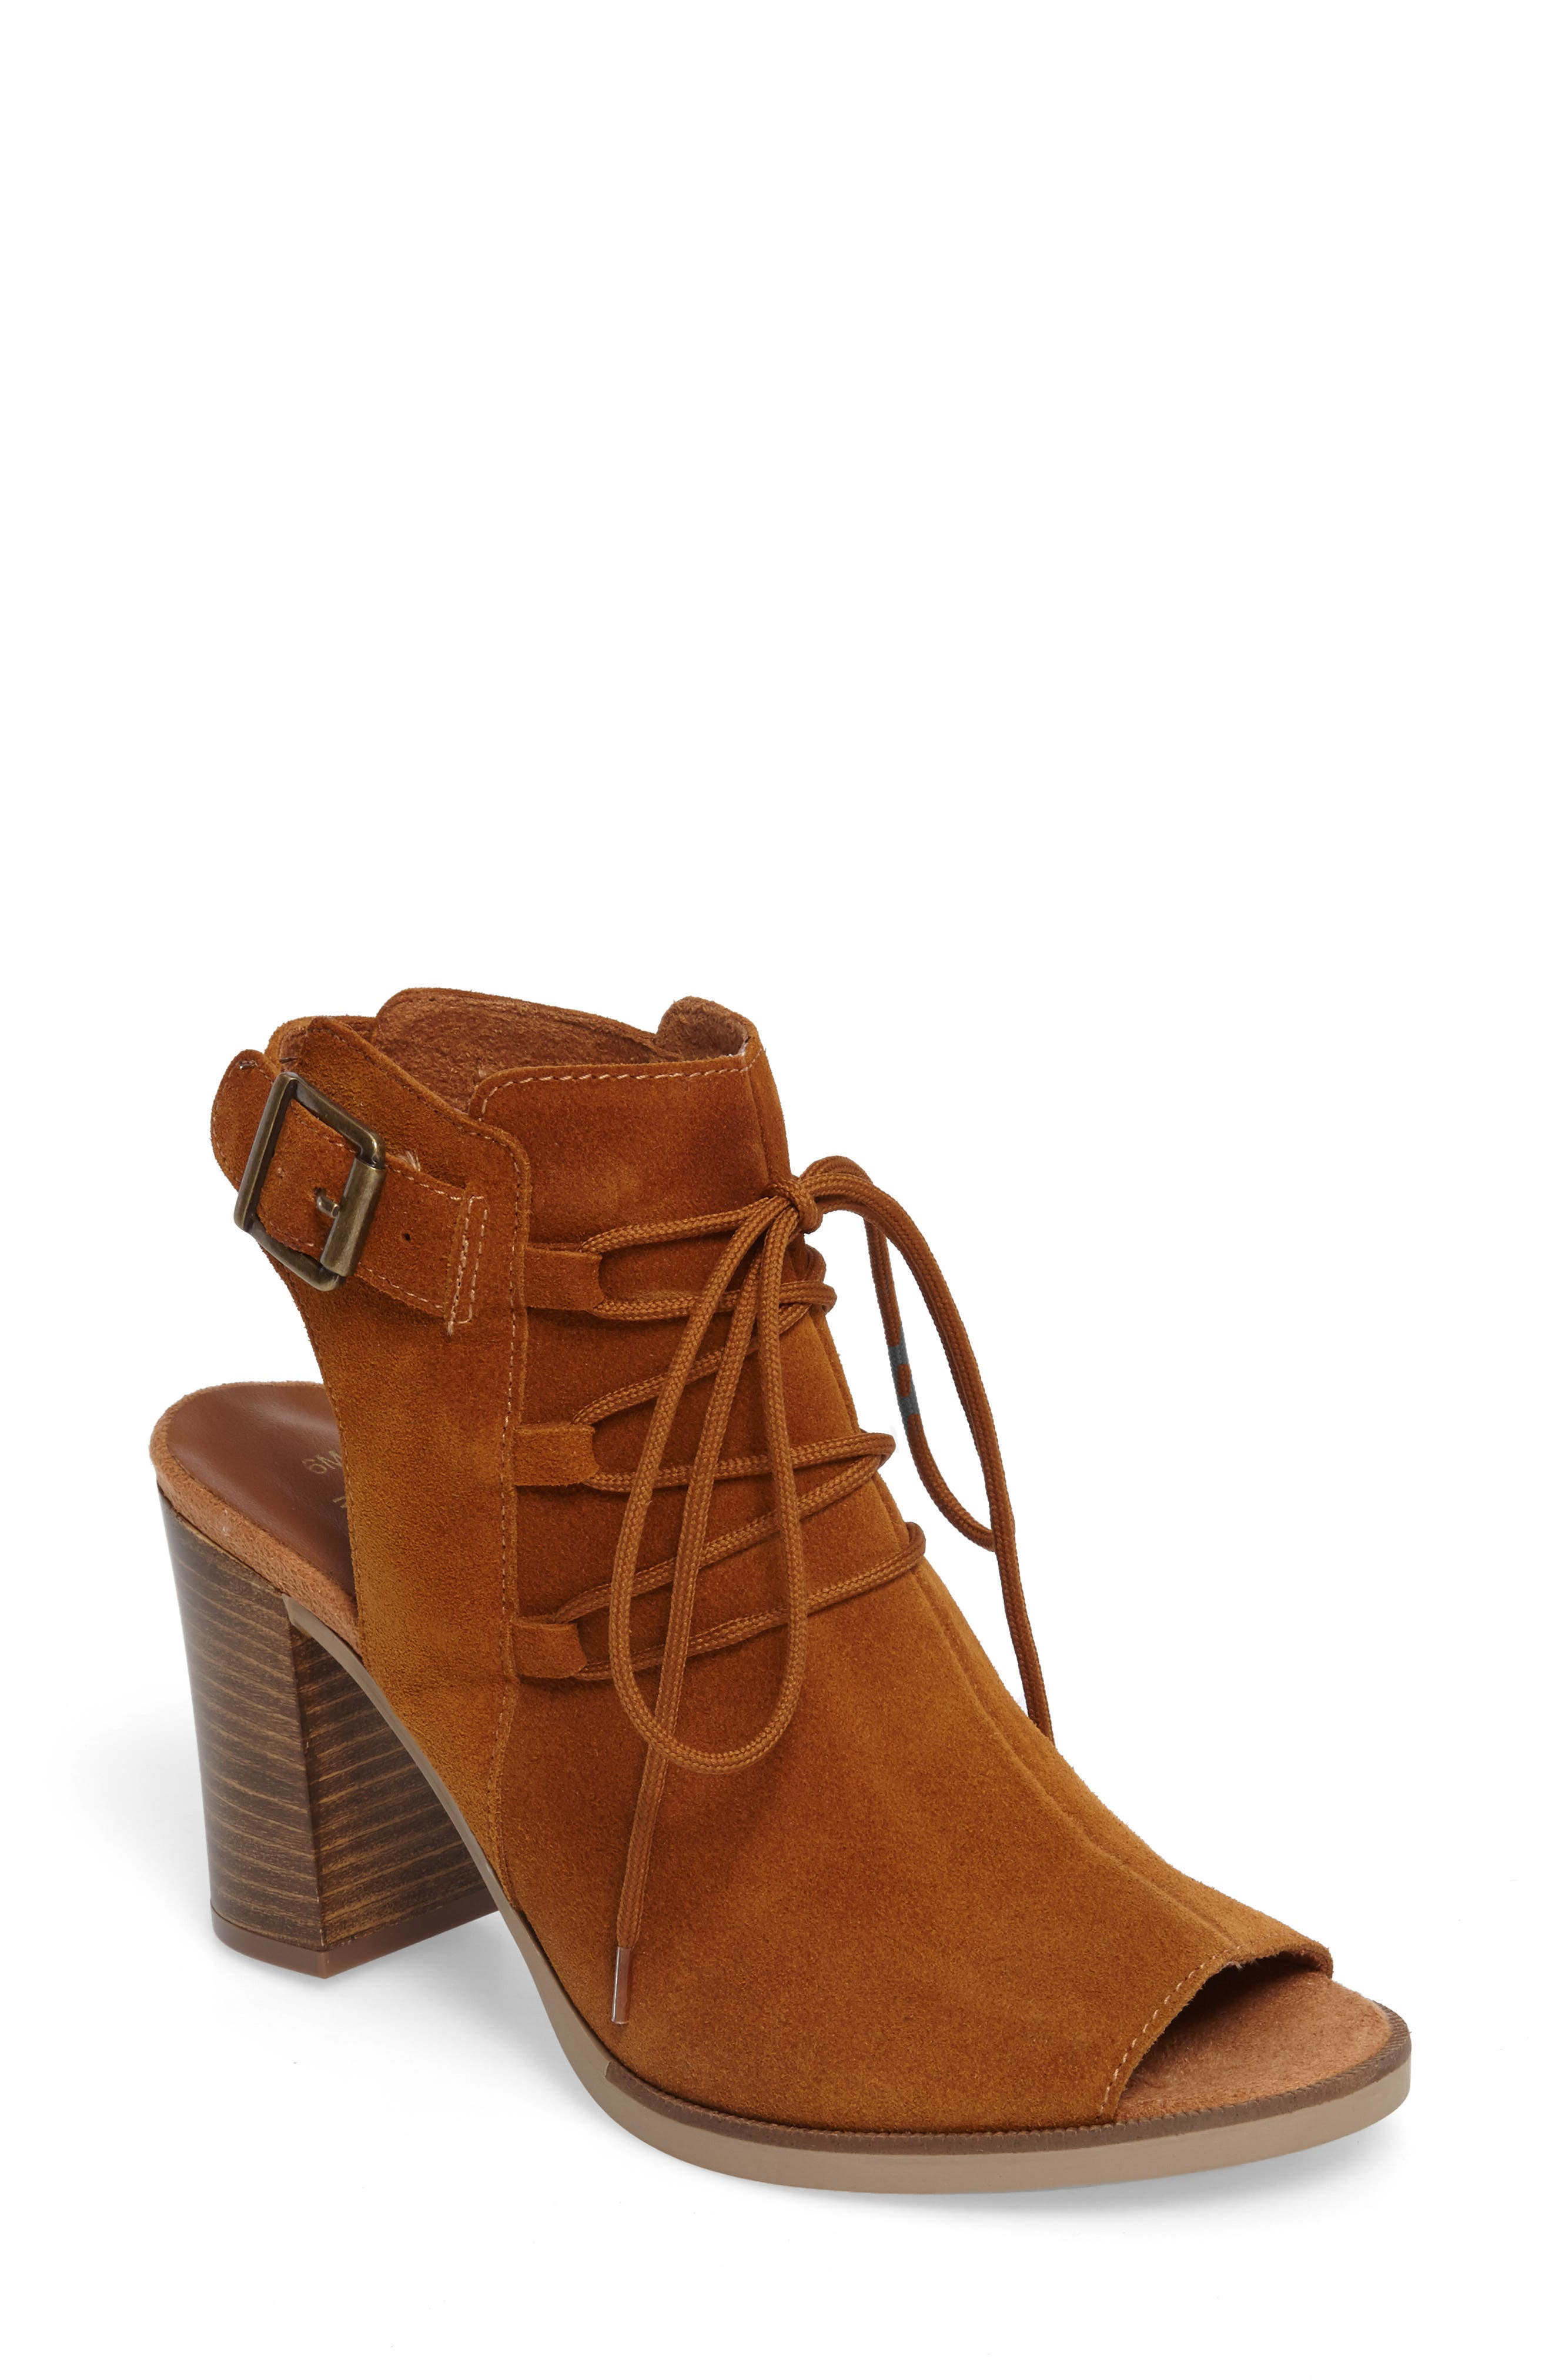 Bella Vita Pru Lace-Up Peep Toe Bootie (Women)